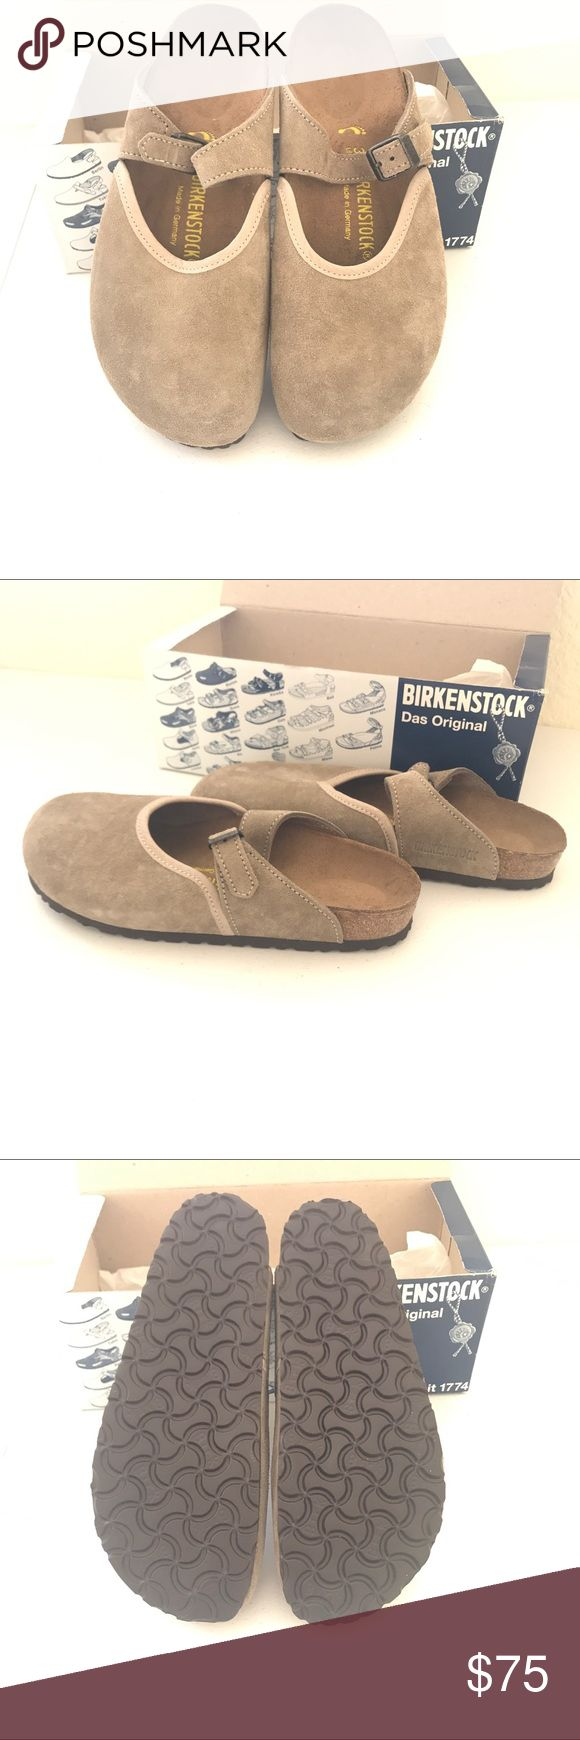 Birkenstock Ascot style Sandal New in box Papillio by Birkenstocks. Style Sydney, leather footbedliner, natural cork footbed, leather upper, EVA sole. Suede leather, taupe color. Size 39. Hard to find discontinued style. Birkenstock Shoes Sandals